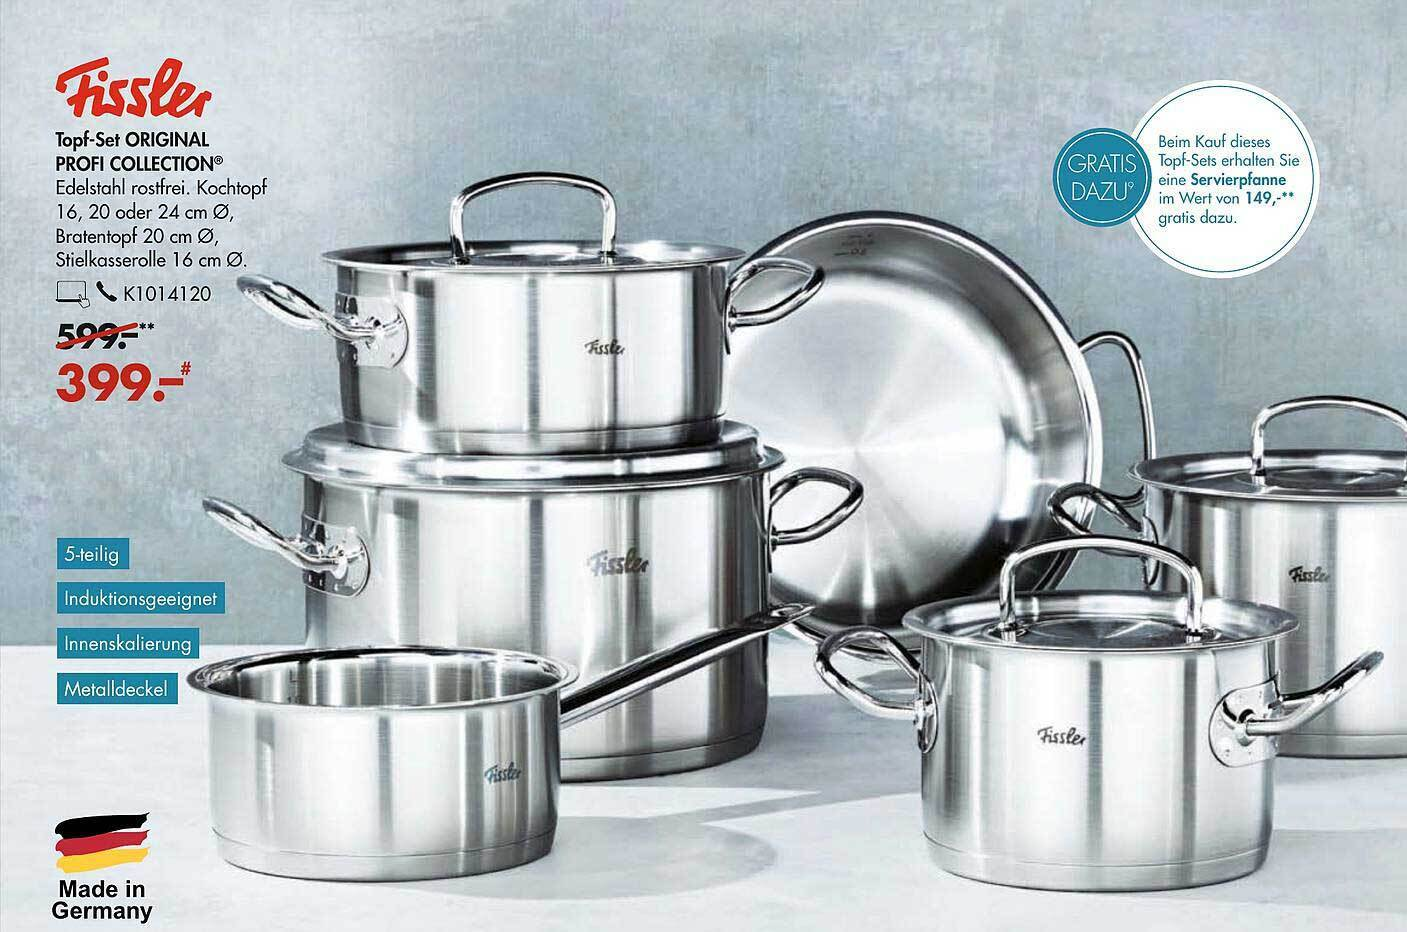 Fissler Topf Set Original Profi Collection Angebot Bei Galeria